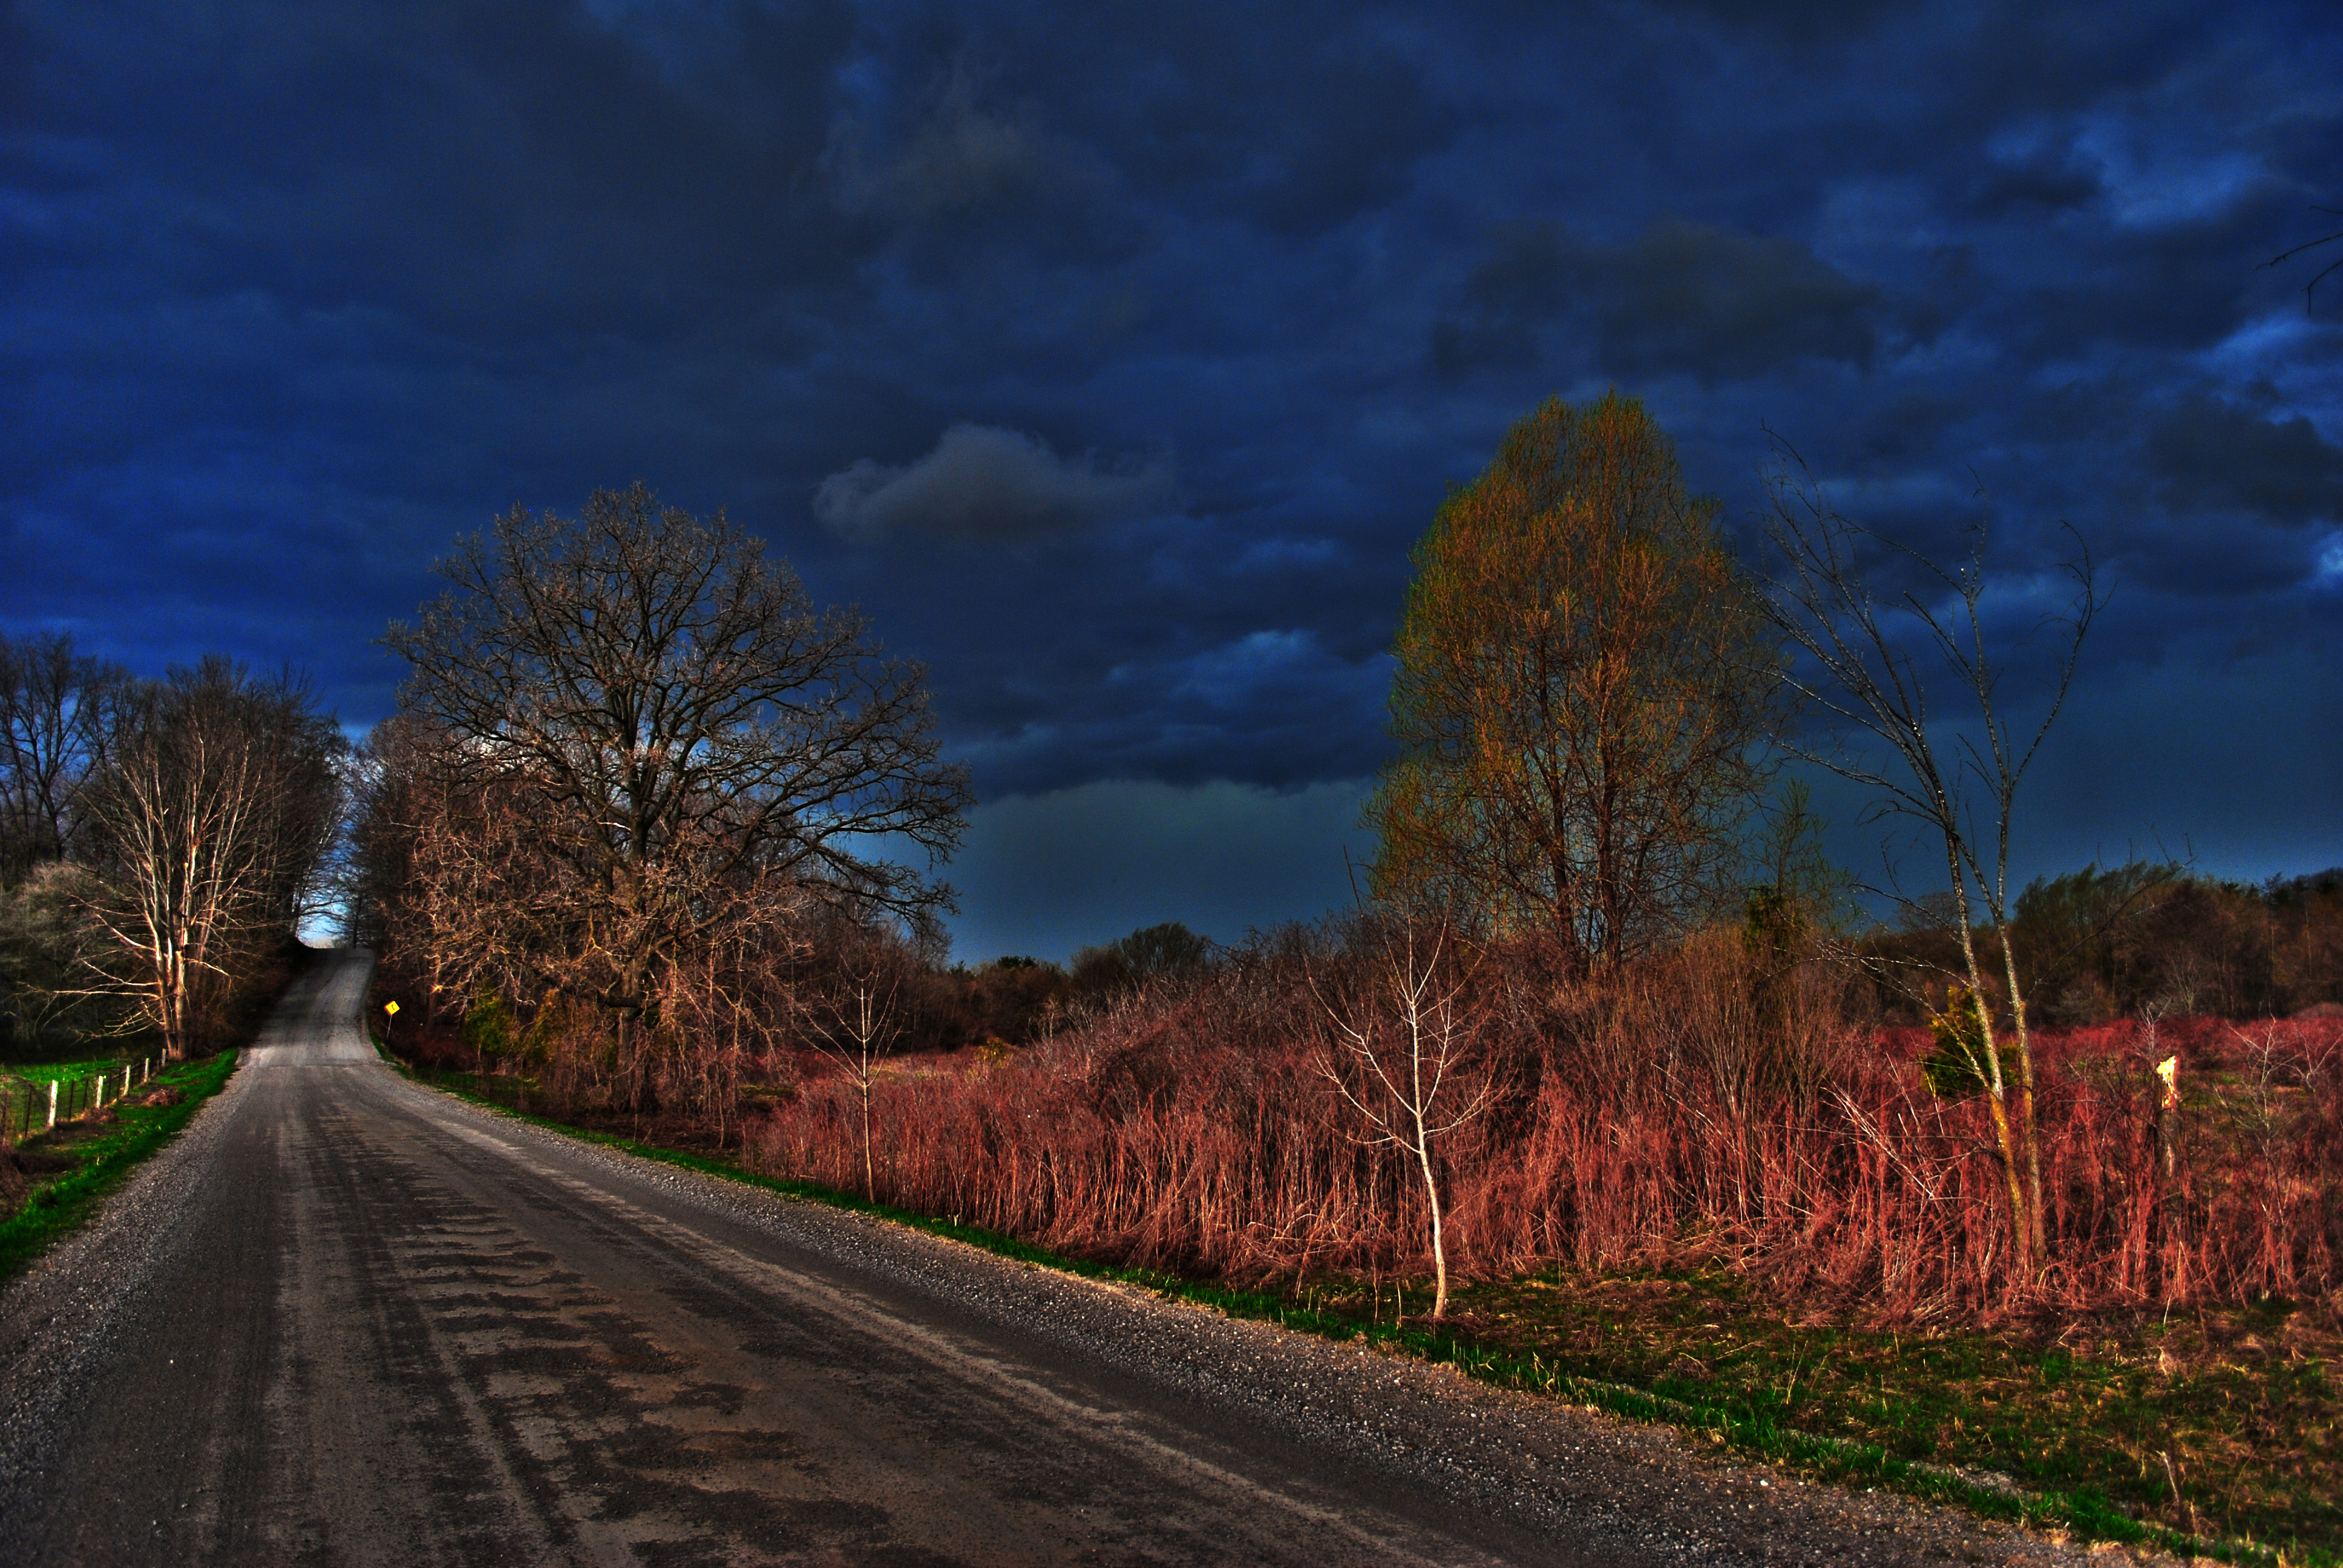 calm before the storm, Clouds, Dirt, HDR, Landscape, HQ Photo